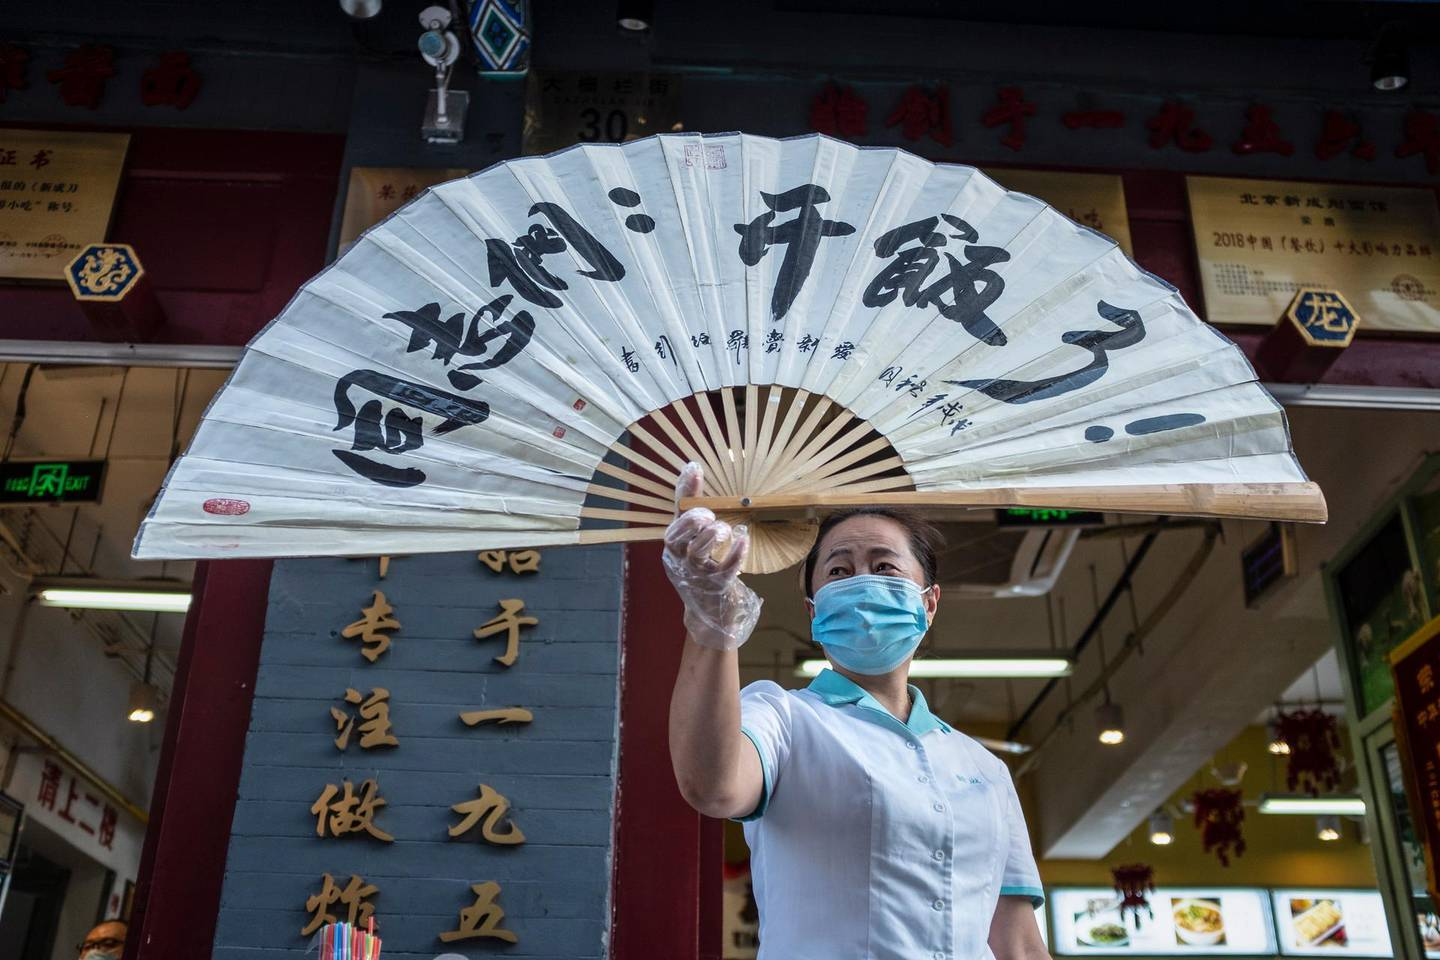 epa08444685 A waitress wearing a protective face mask holds a folding fan reading 'comrades, time for meal' outside a restaurant in Beijing, China, 26 May 2020.  EPA/WU HONG